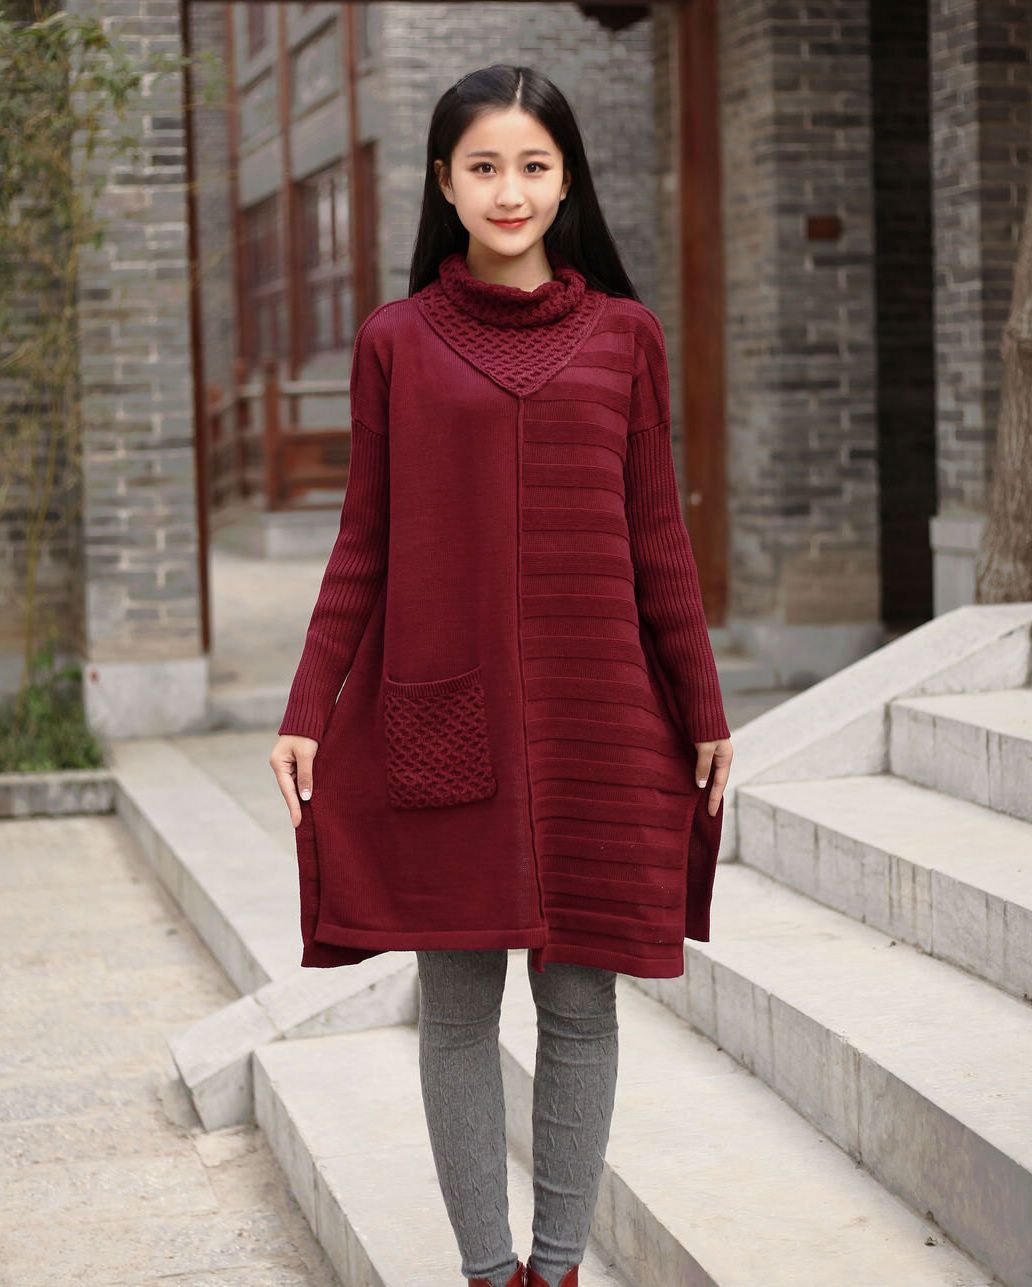 ca678099fc Cotton Sweater Winter long sweater Plus size sweater dresses Autumn sweater  Large size dress plus size clothing Women Dresses